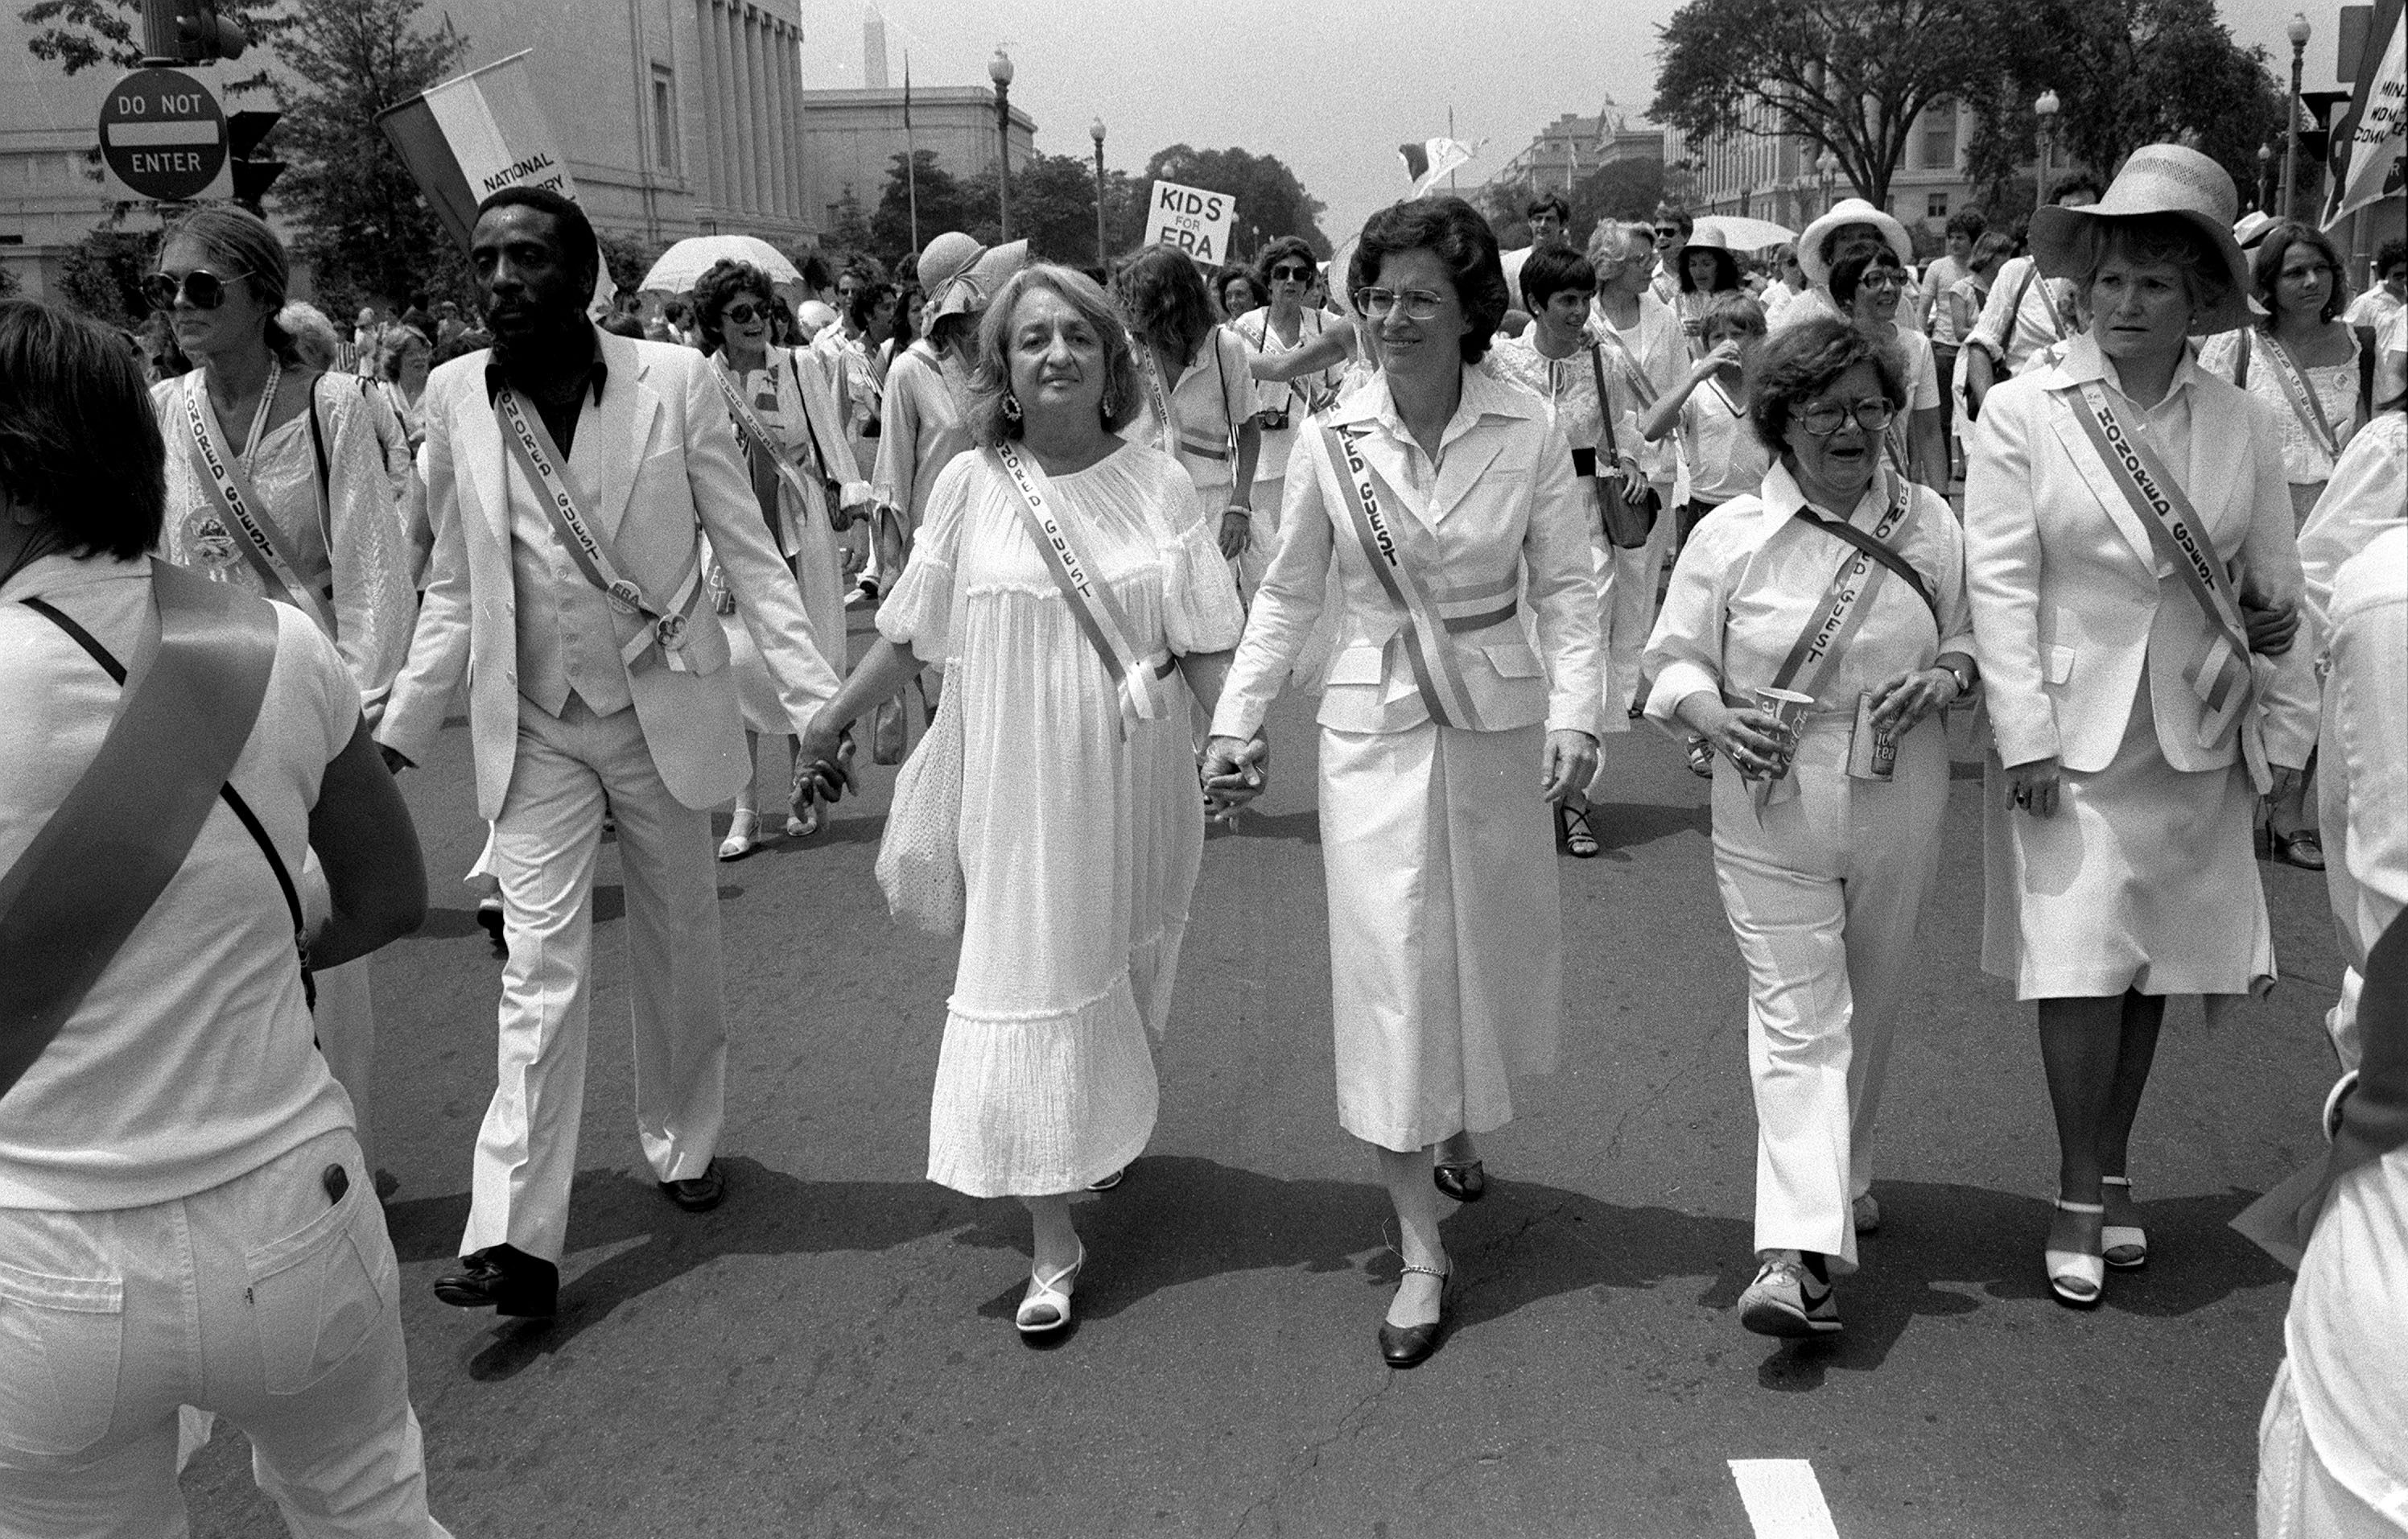 746e18d117c1 Leading supporters of the Equal Rights Amendment march in Washington on  Sunday